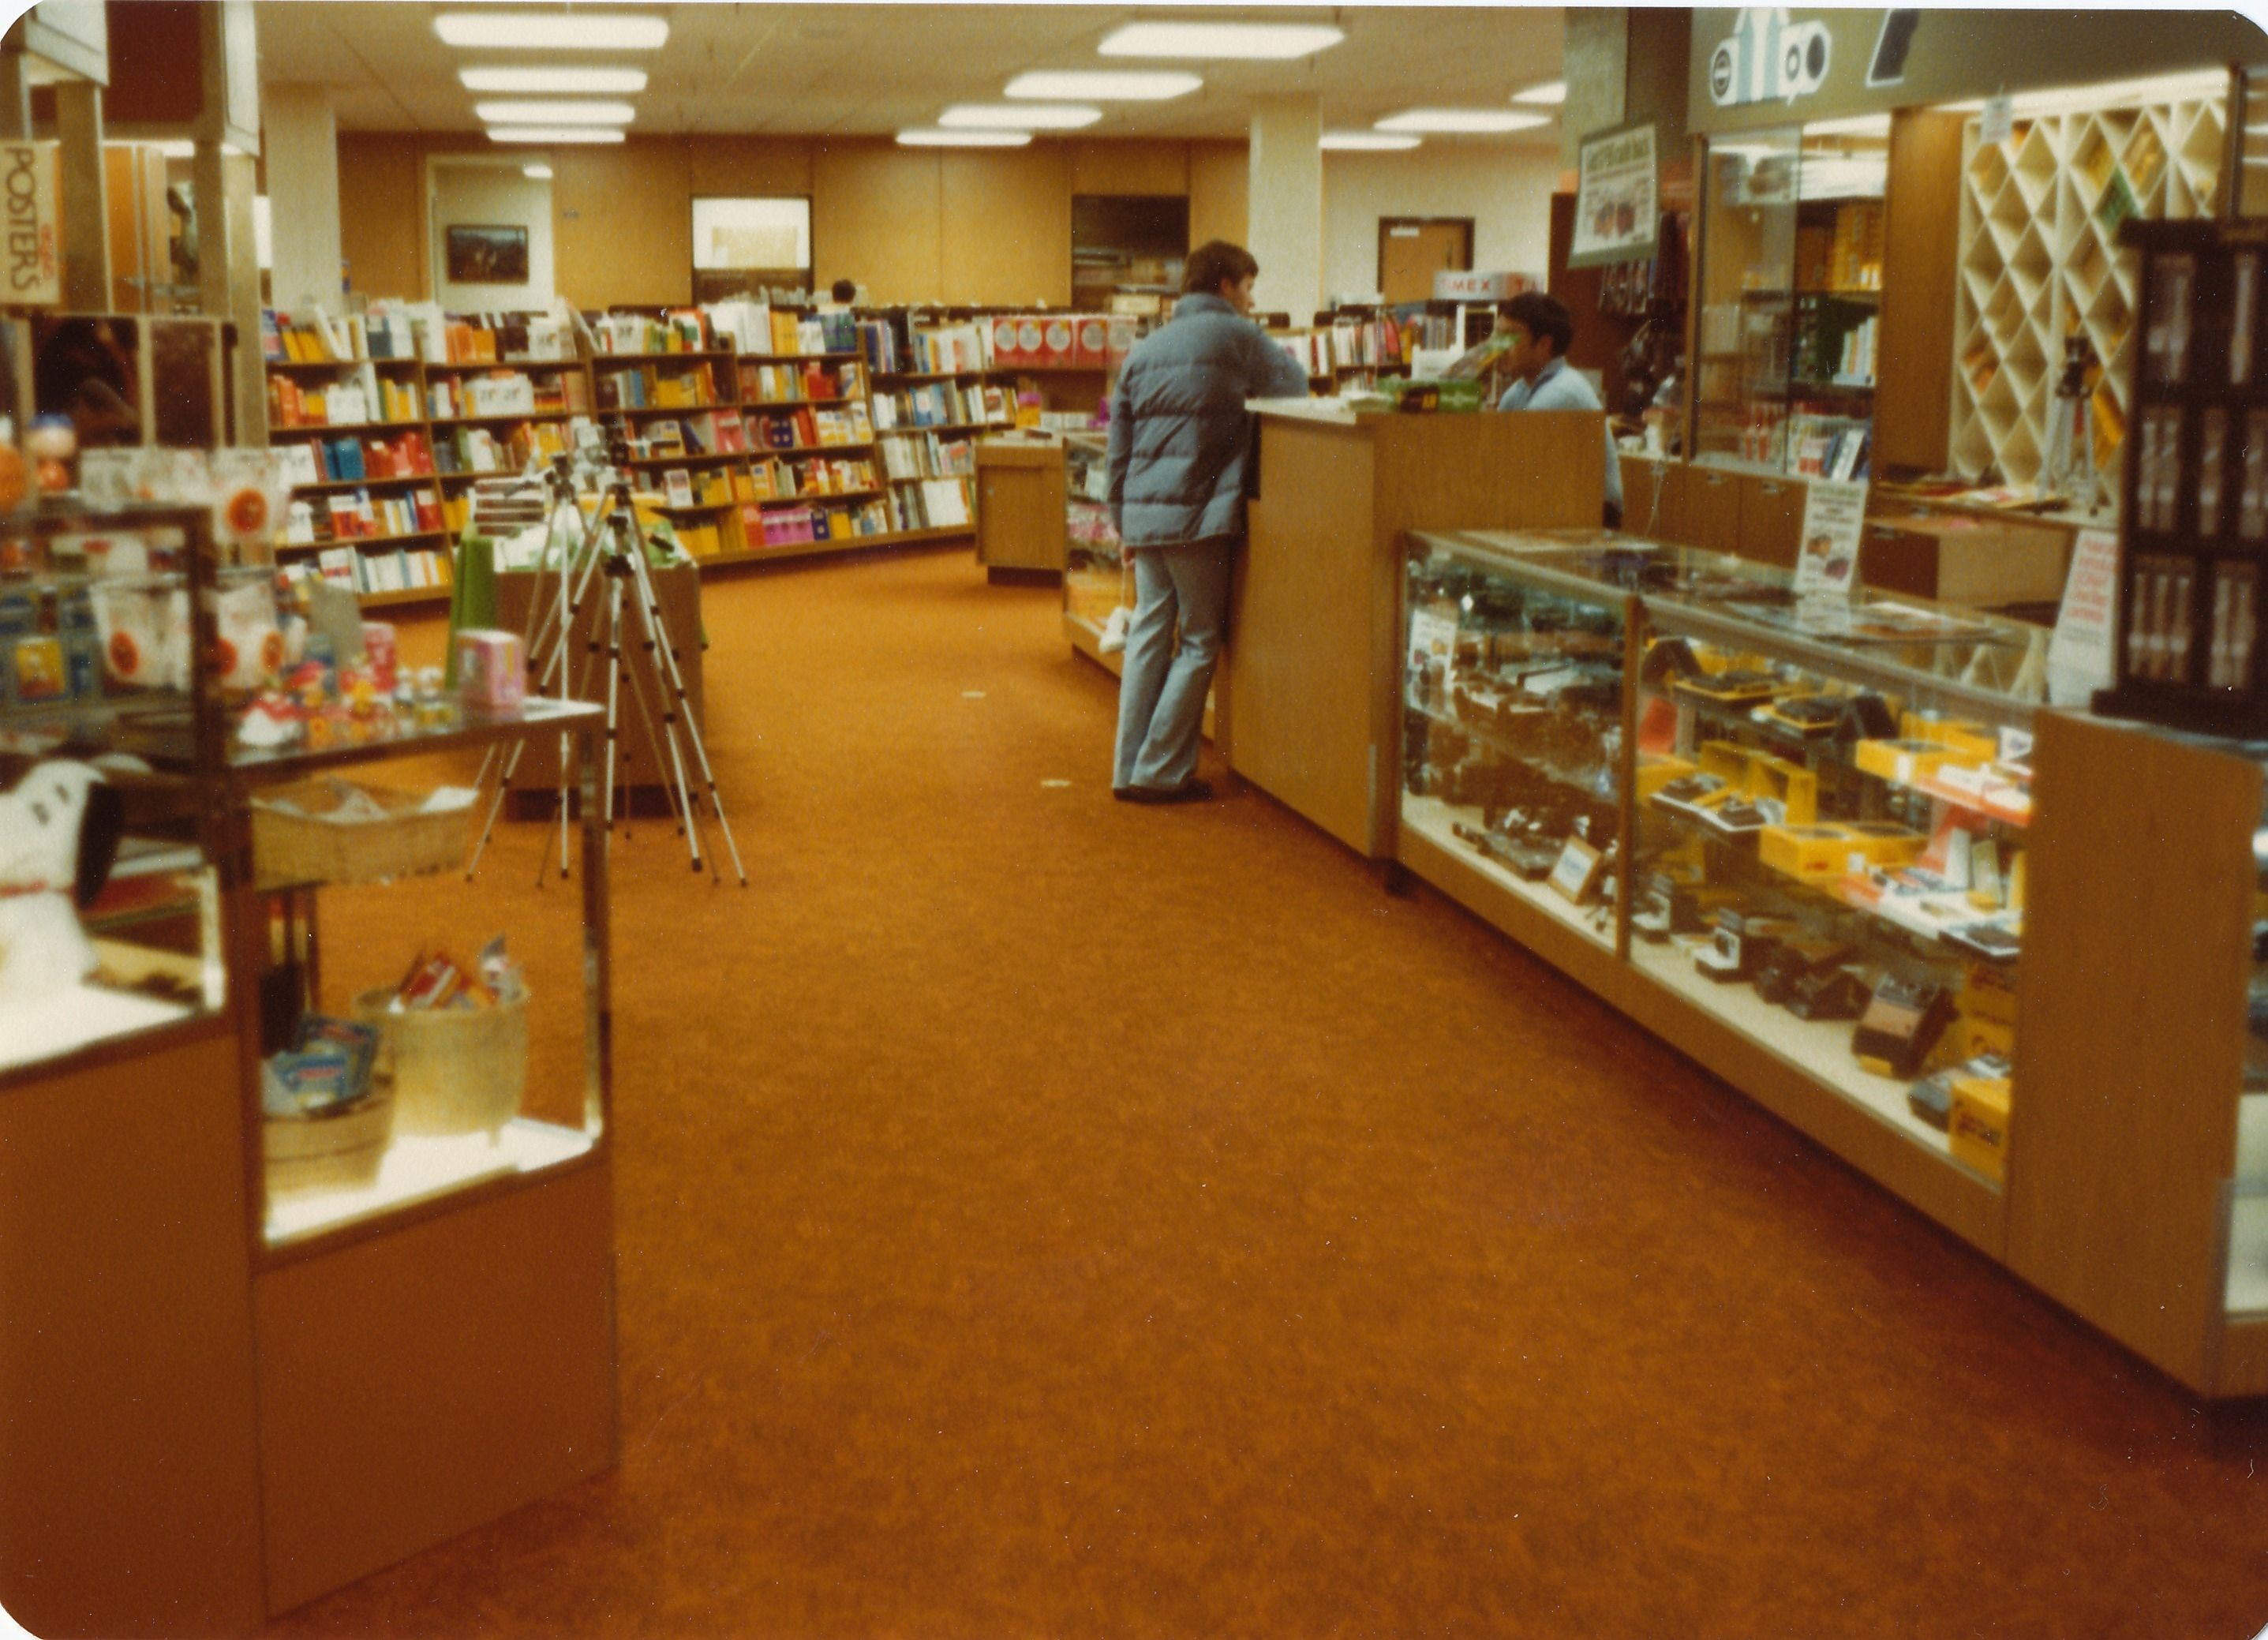 BYU Bookstore - old school style.